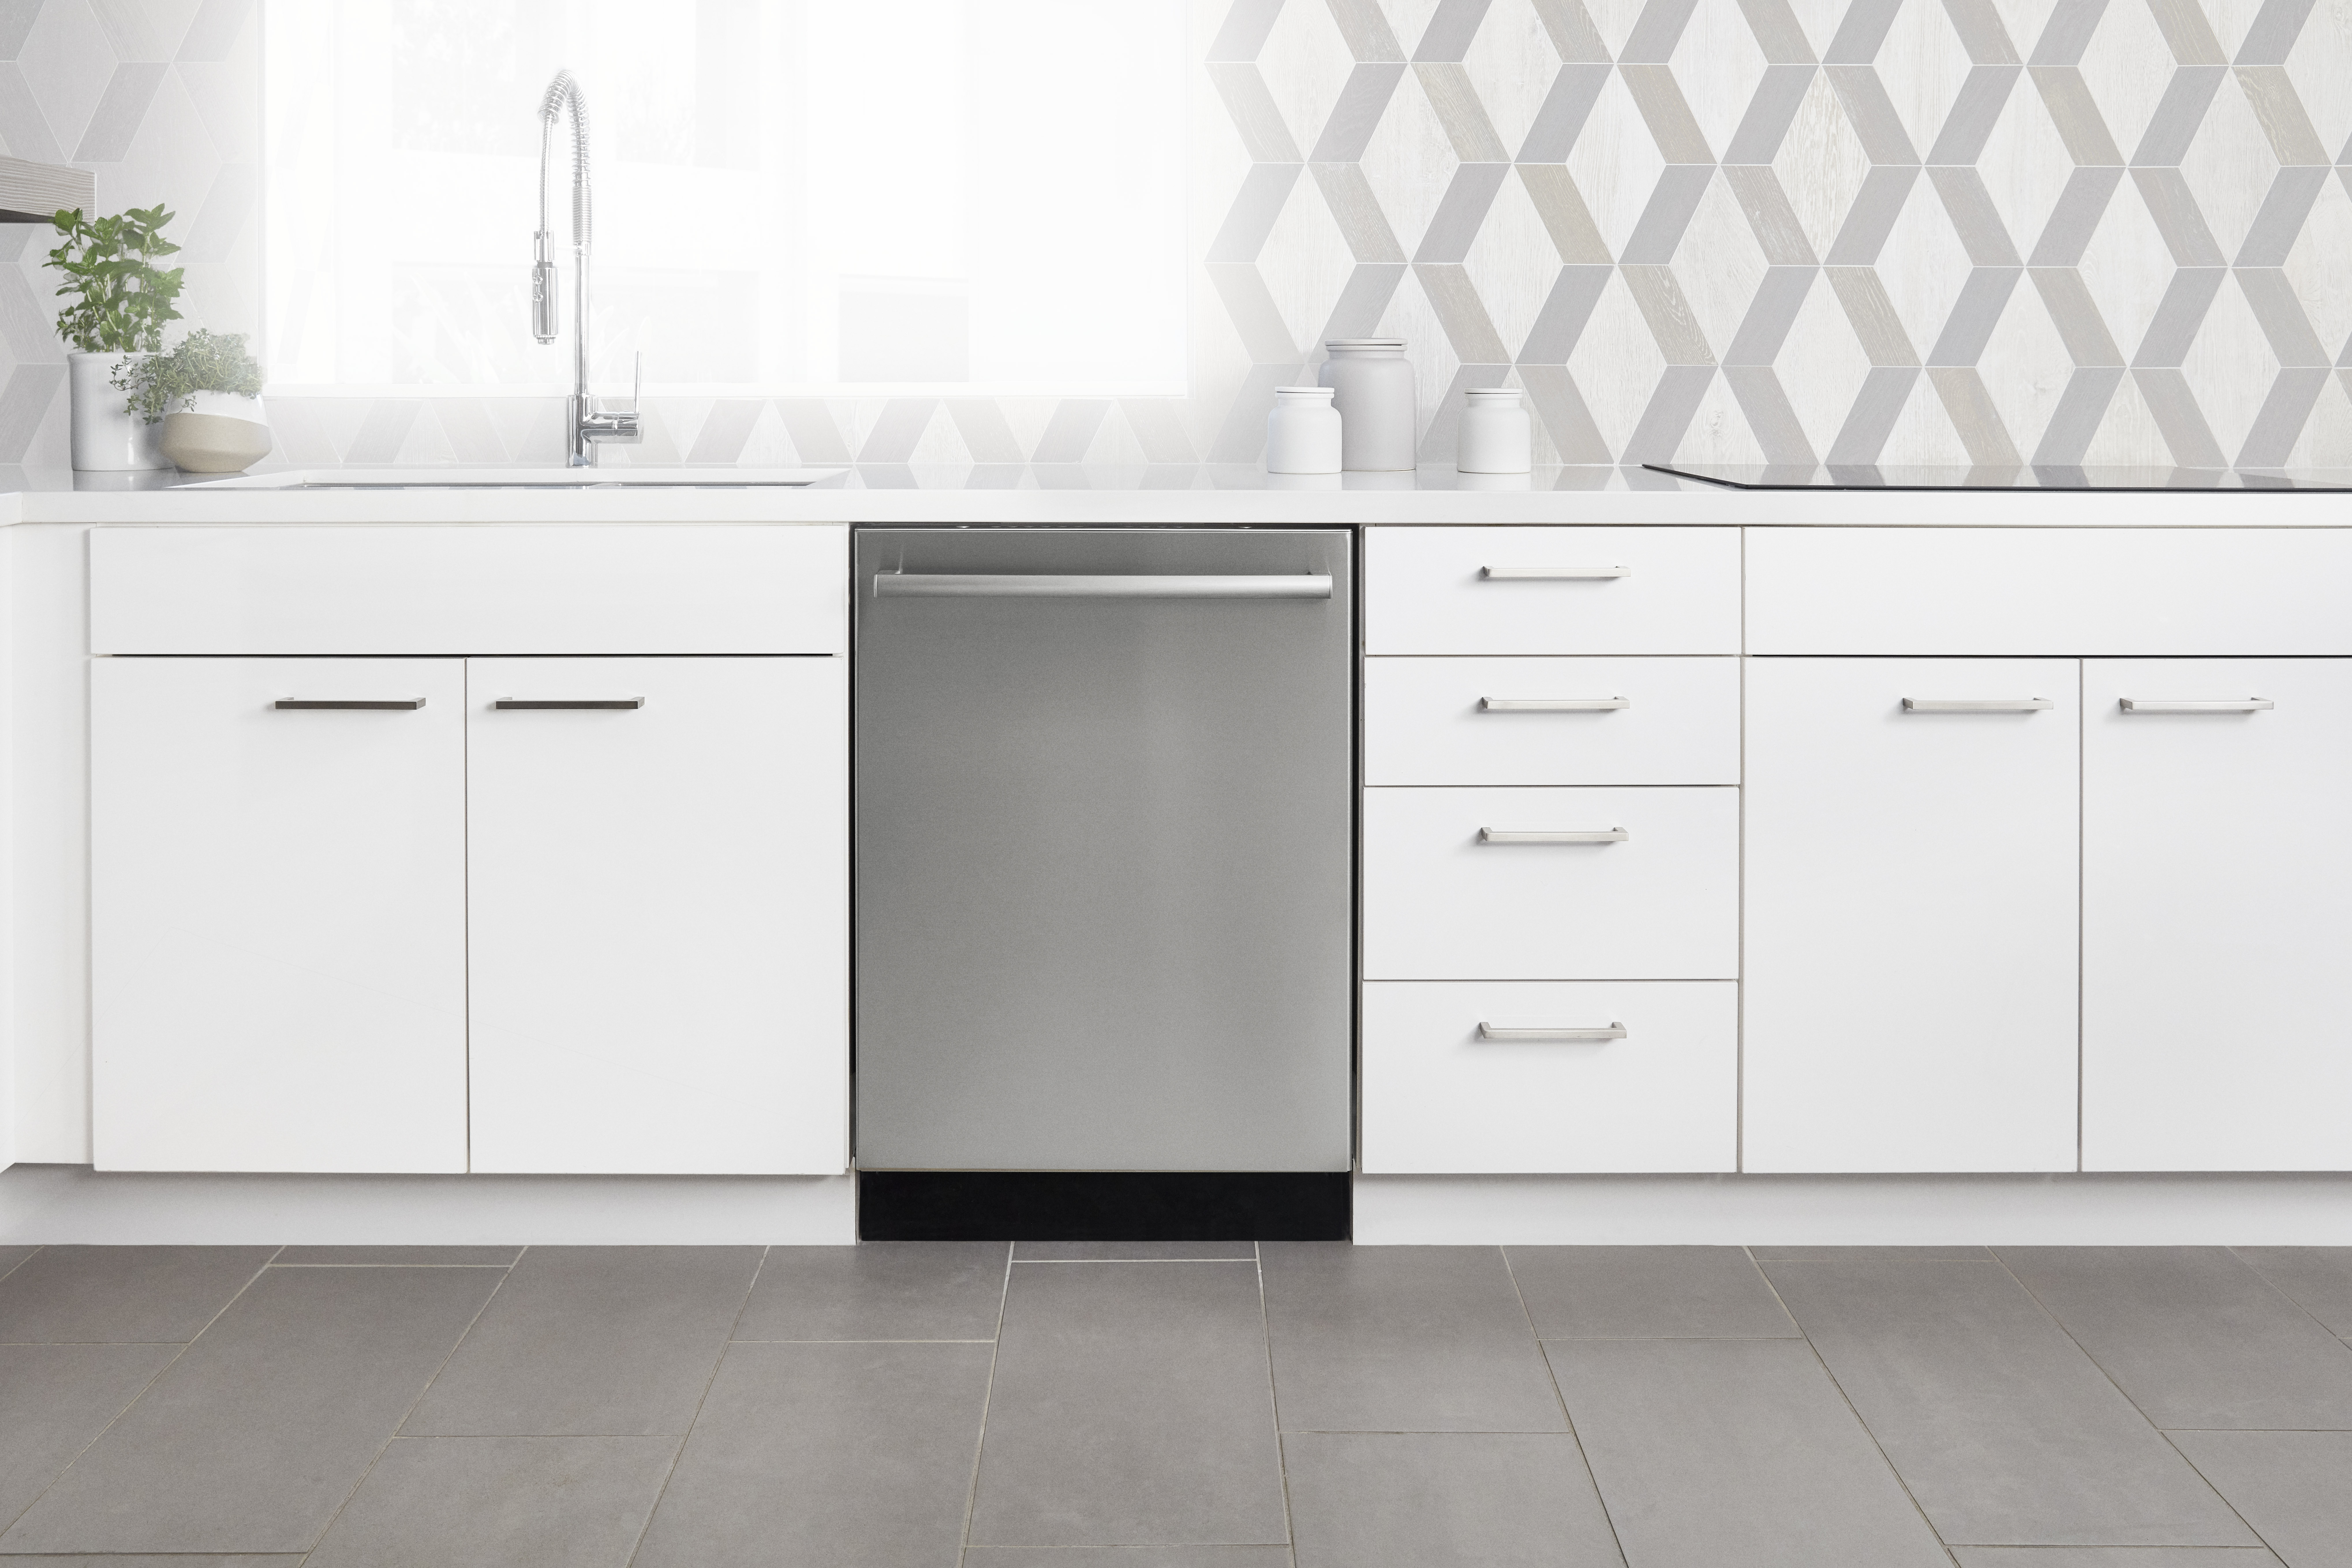 Bosch Unveils New 100 Series Dishwashers With Low Price Point ...